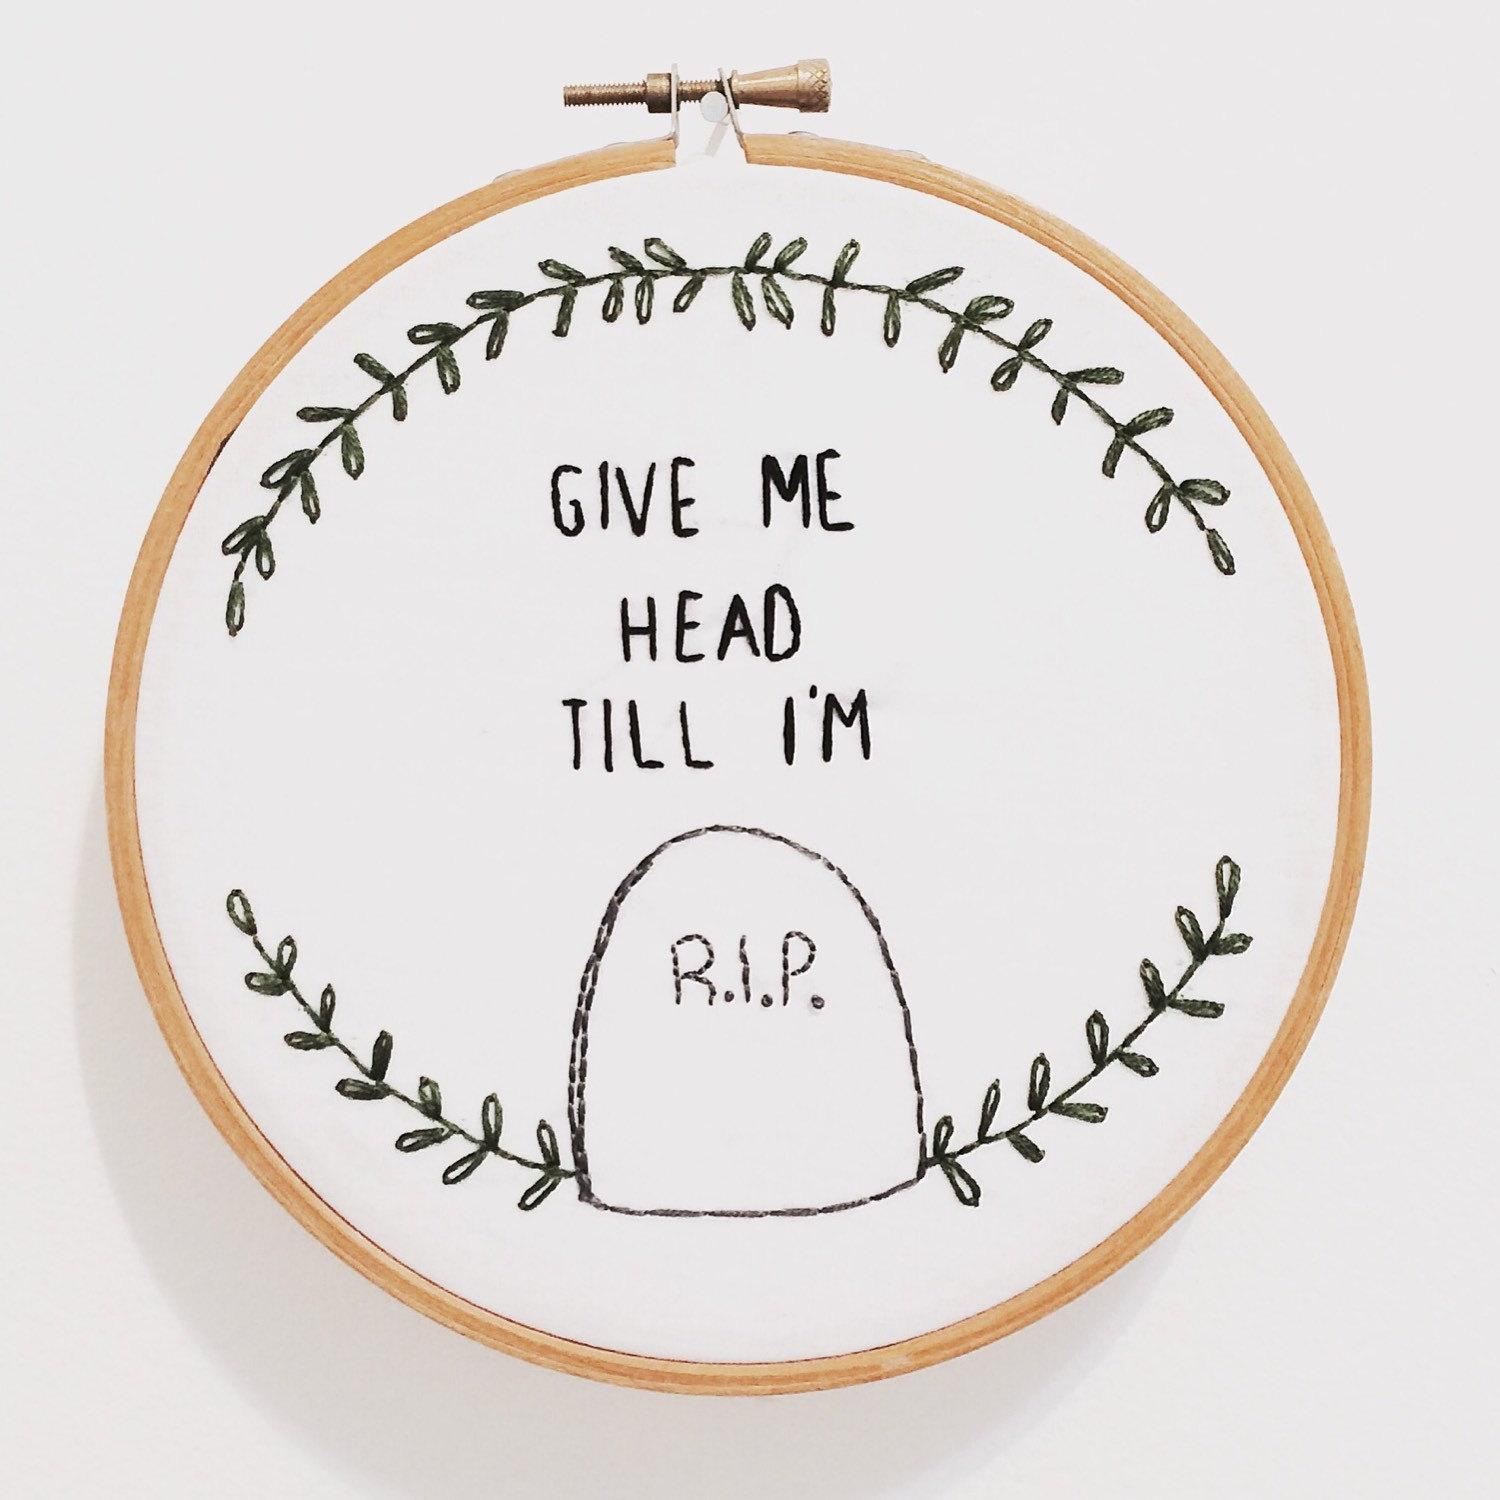 Give Me Head Till I'm Dead Embroidery Wall Art Hand For Feminist Wall Art (View 18 of 20)